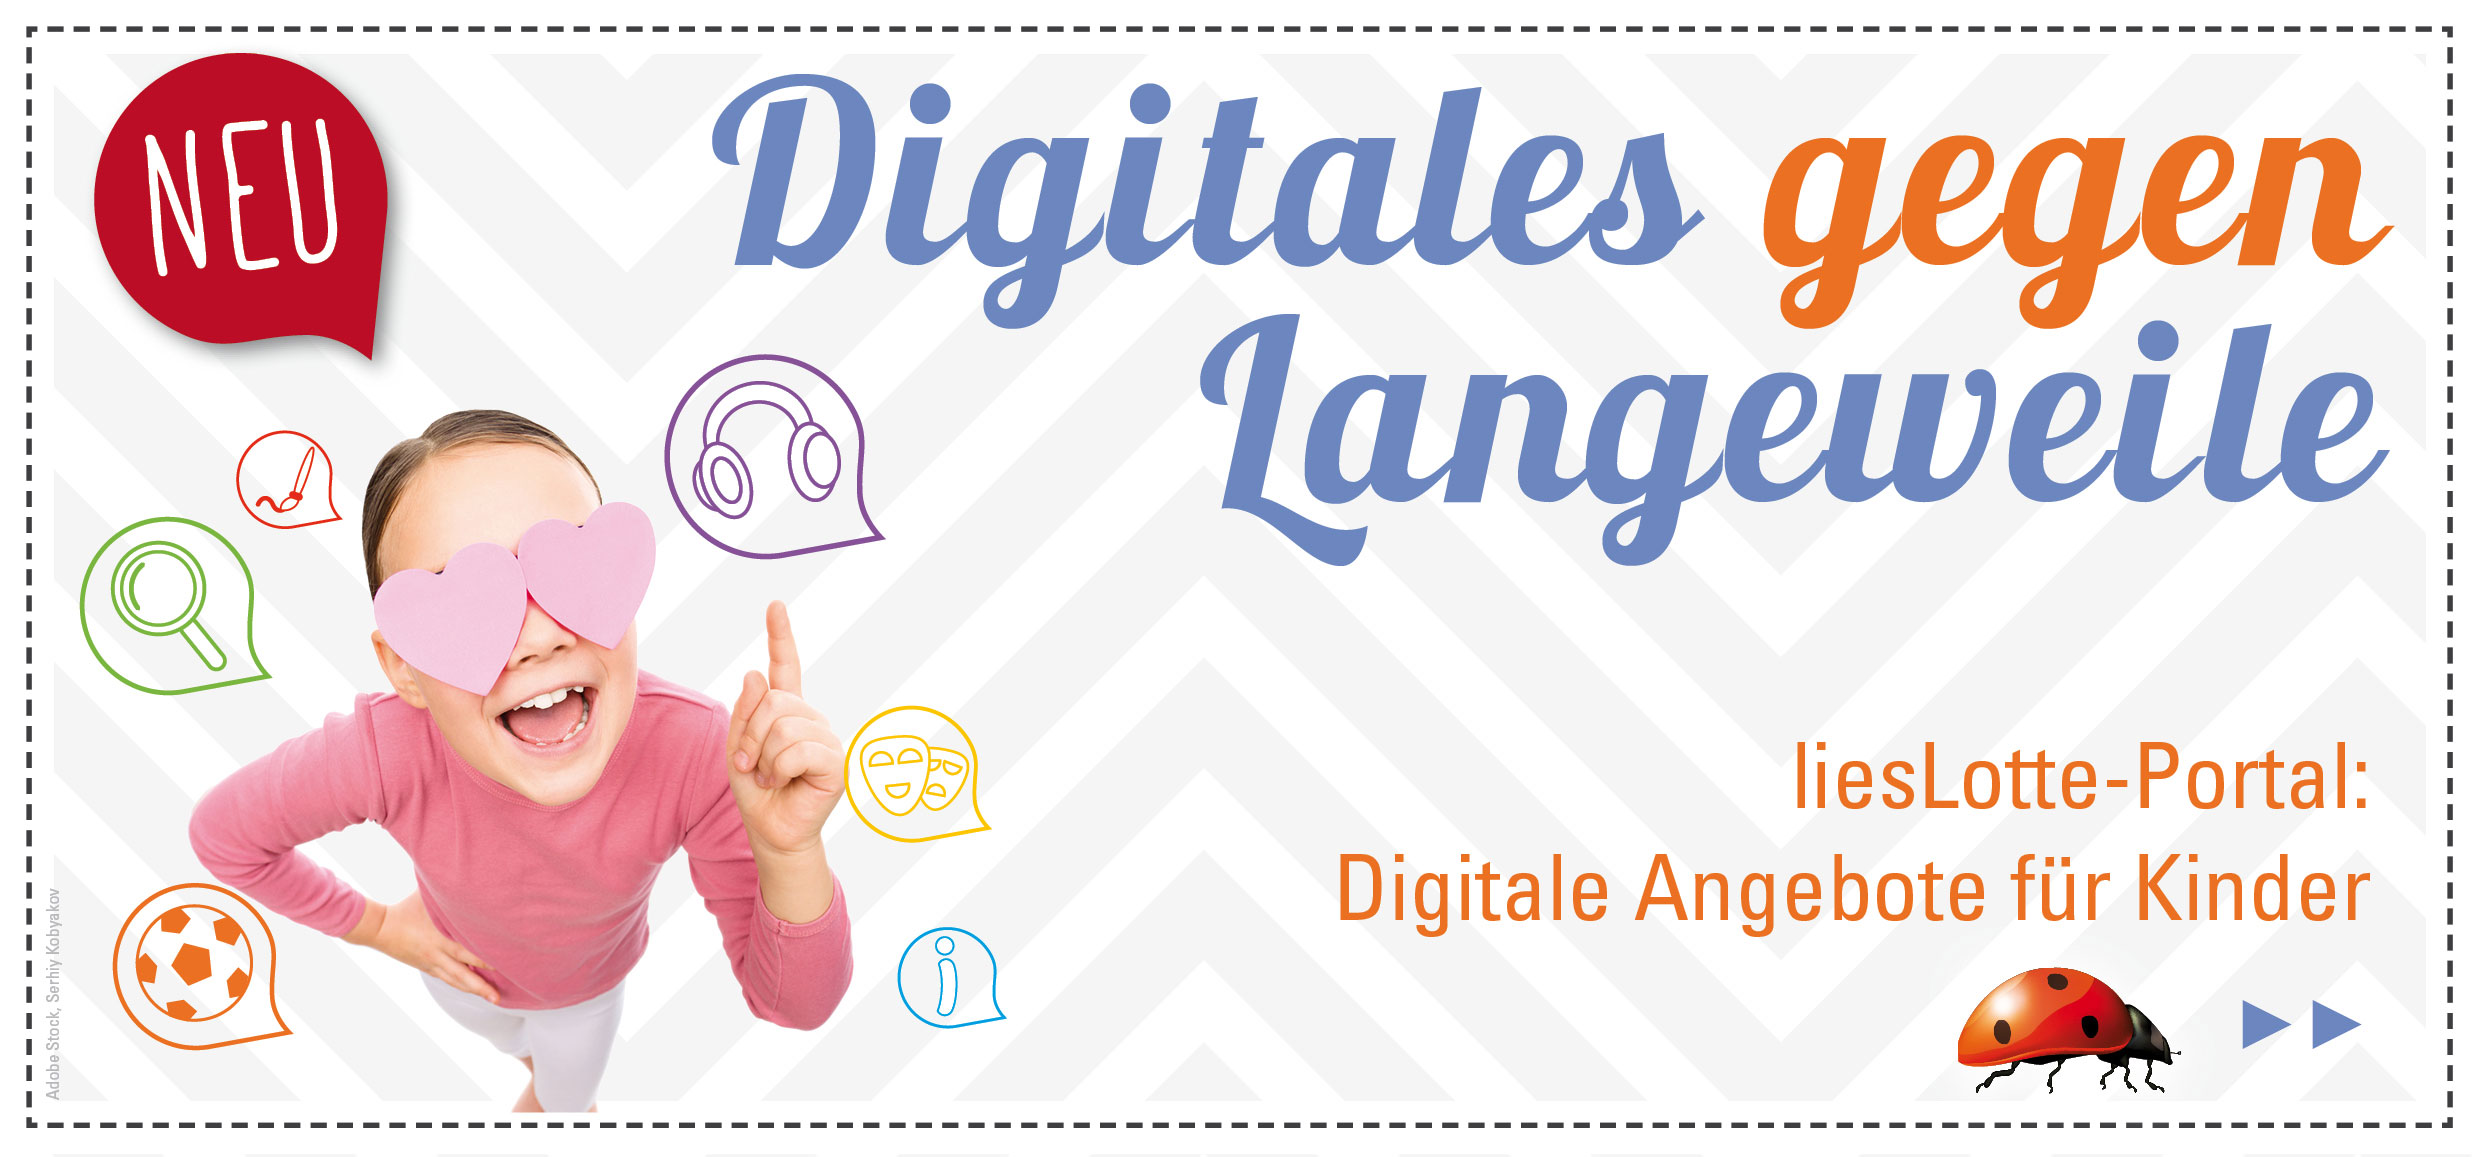 Digitalangebote